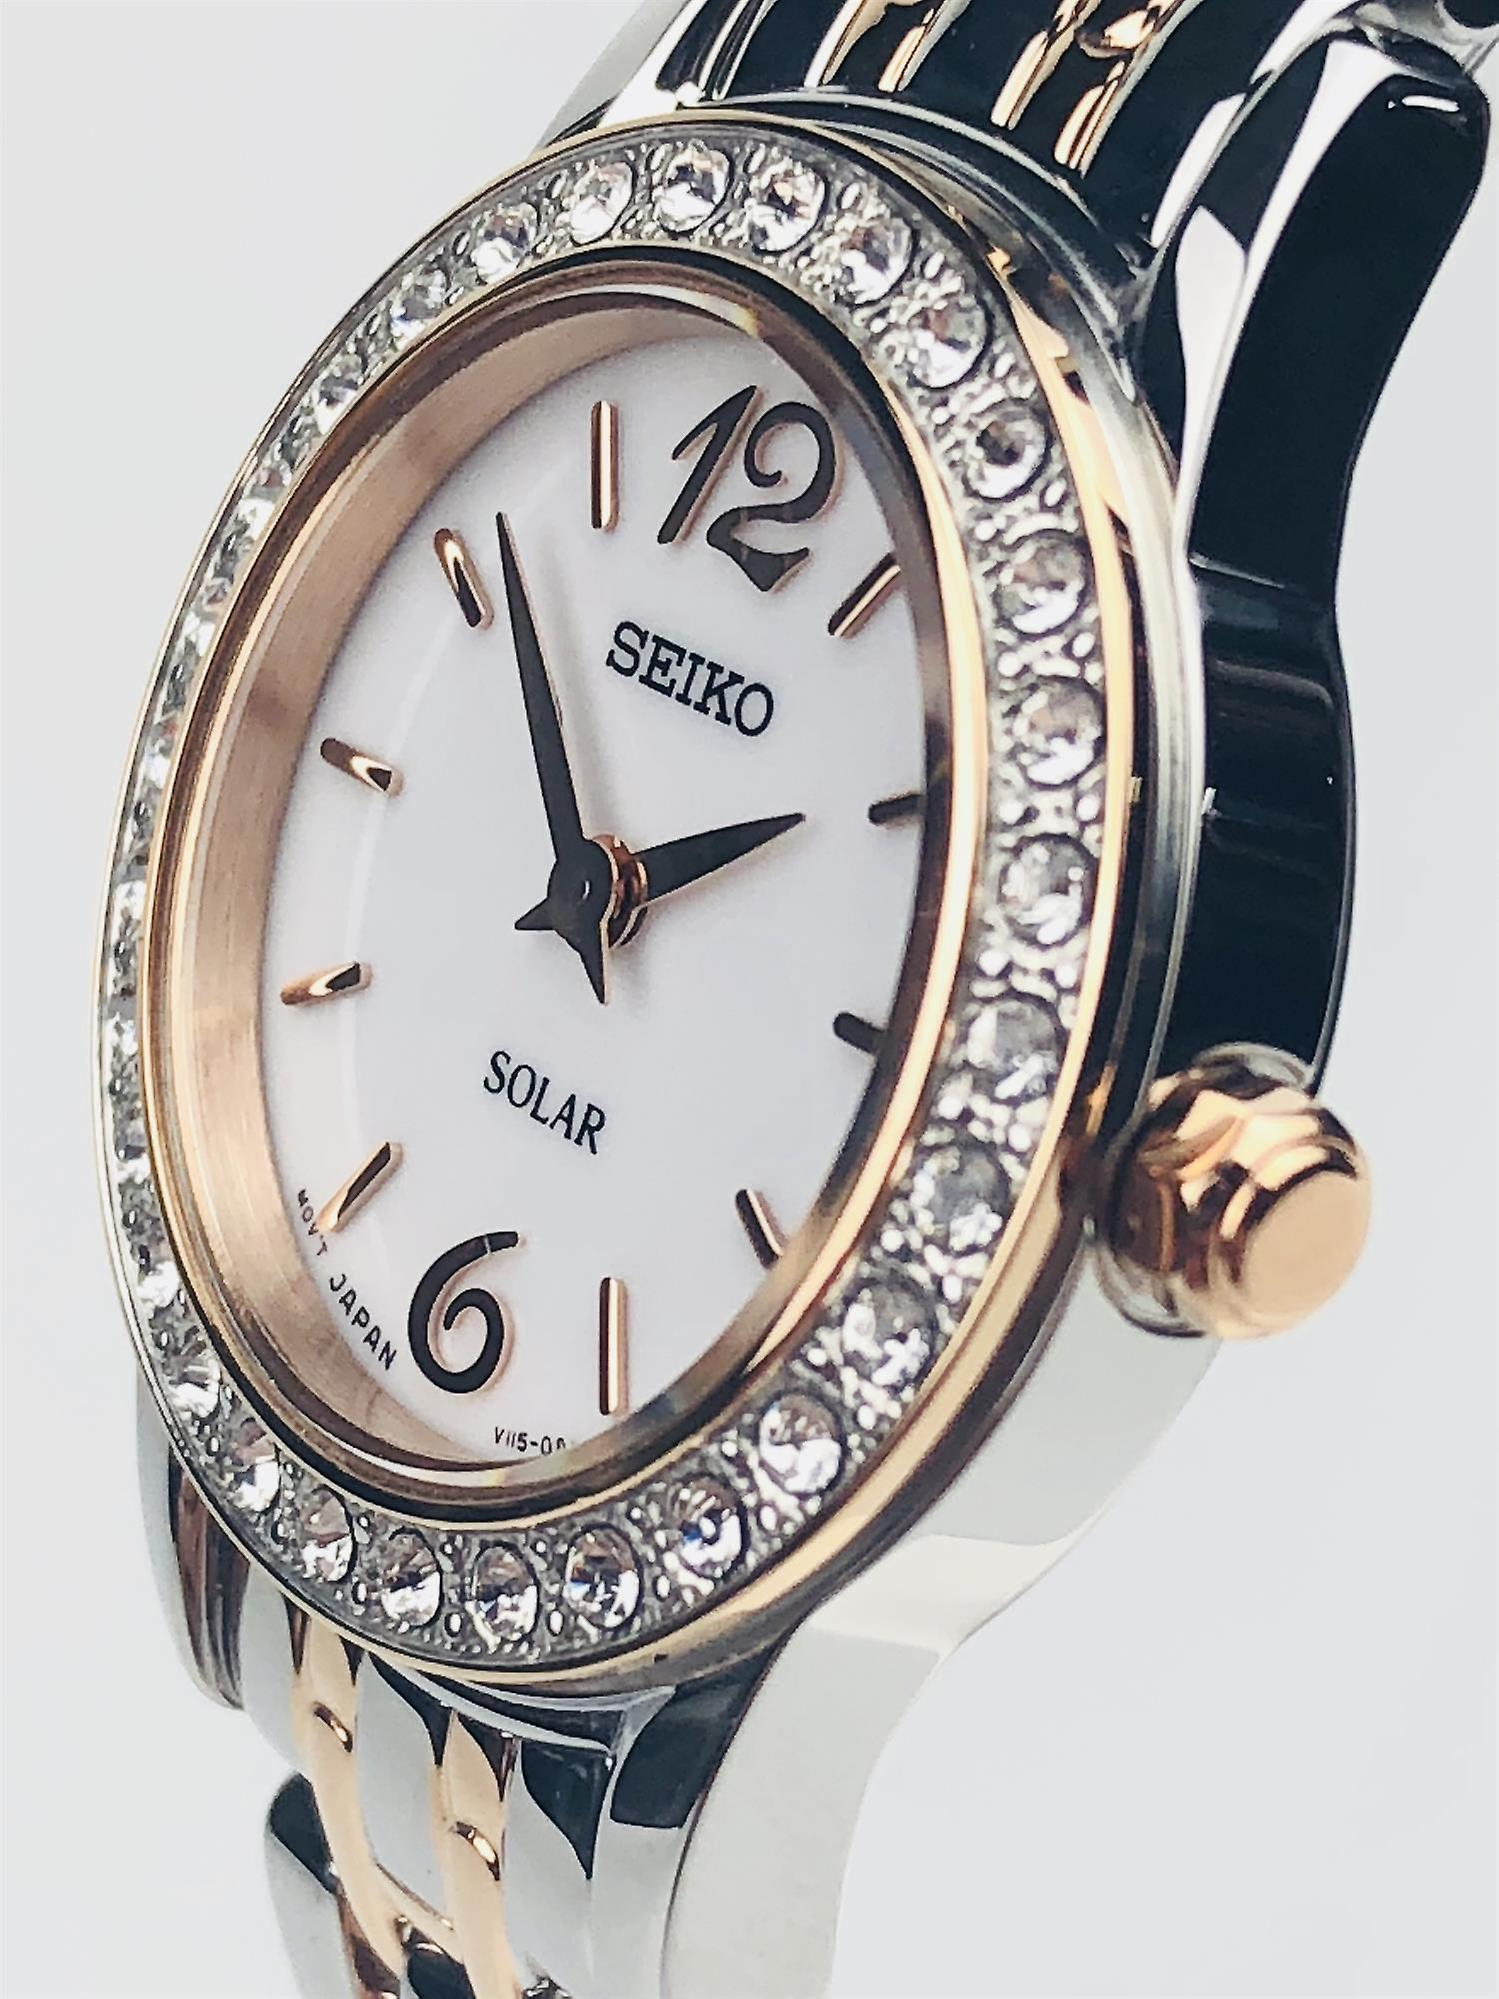 Seiko Dress Solar Two Tone Steel Case and Bracelet Ladies Watch SUP130P9 RRP £249